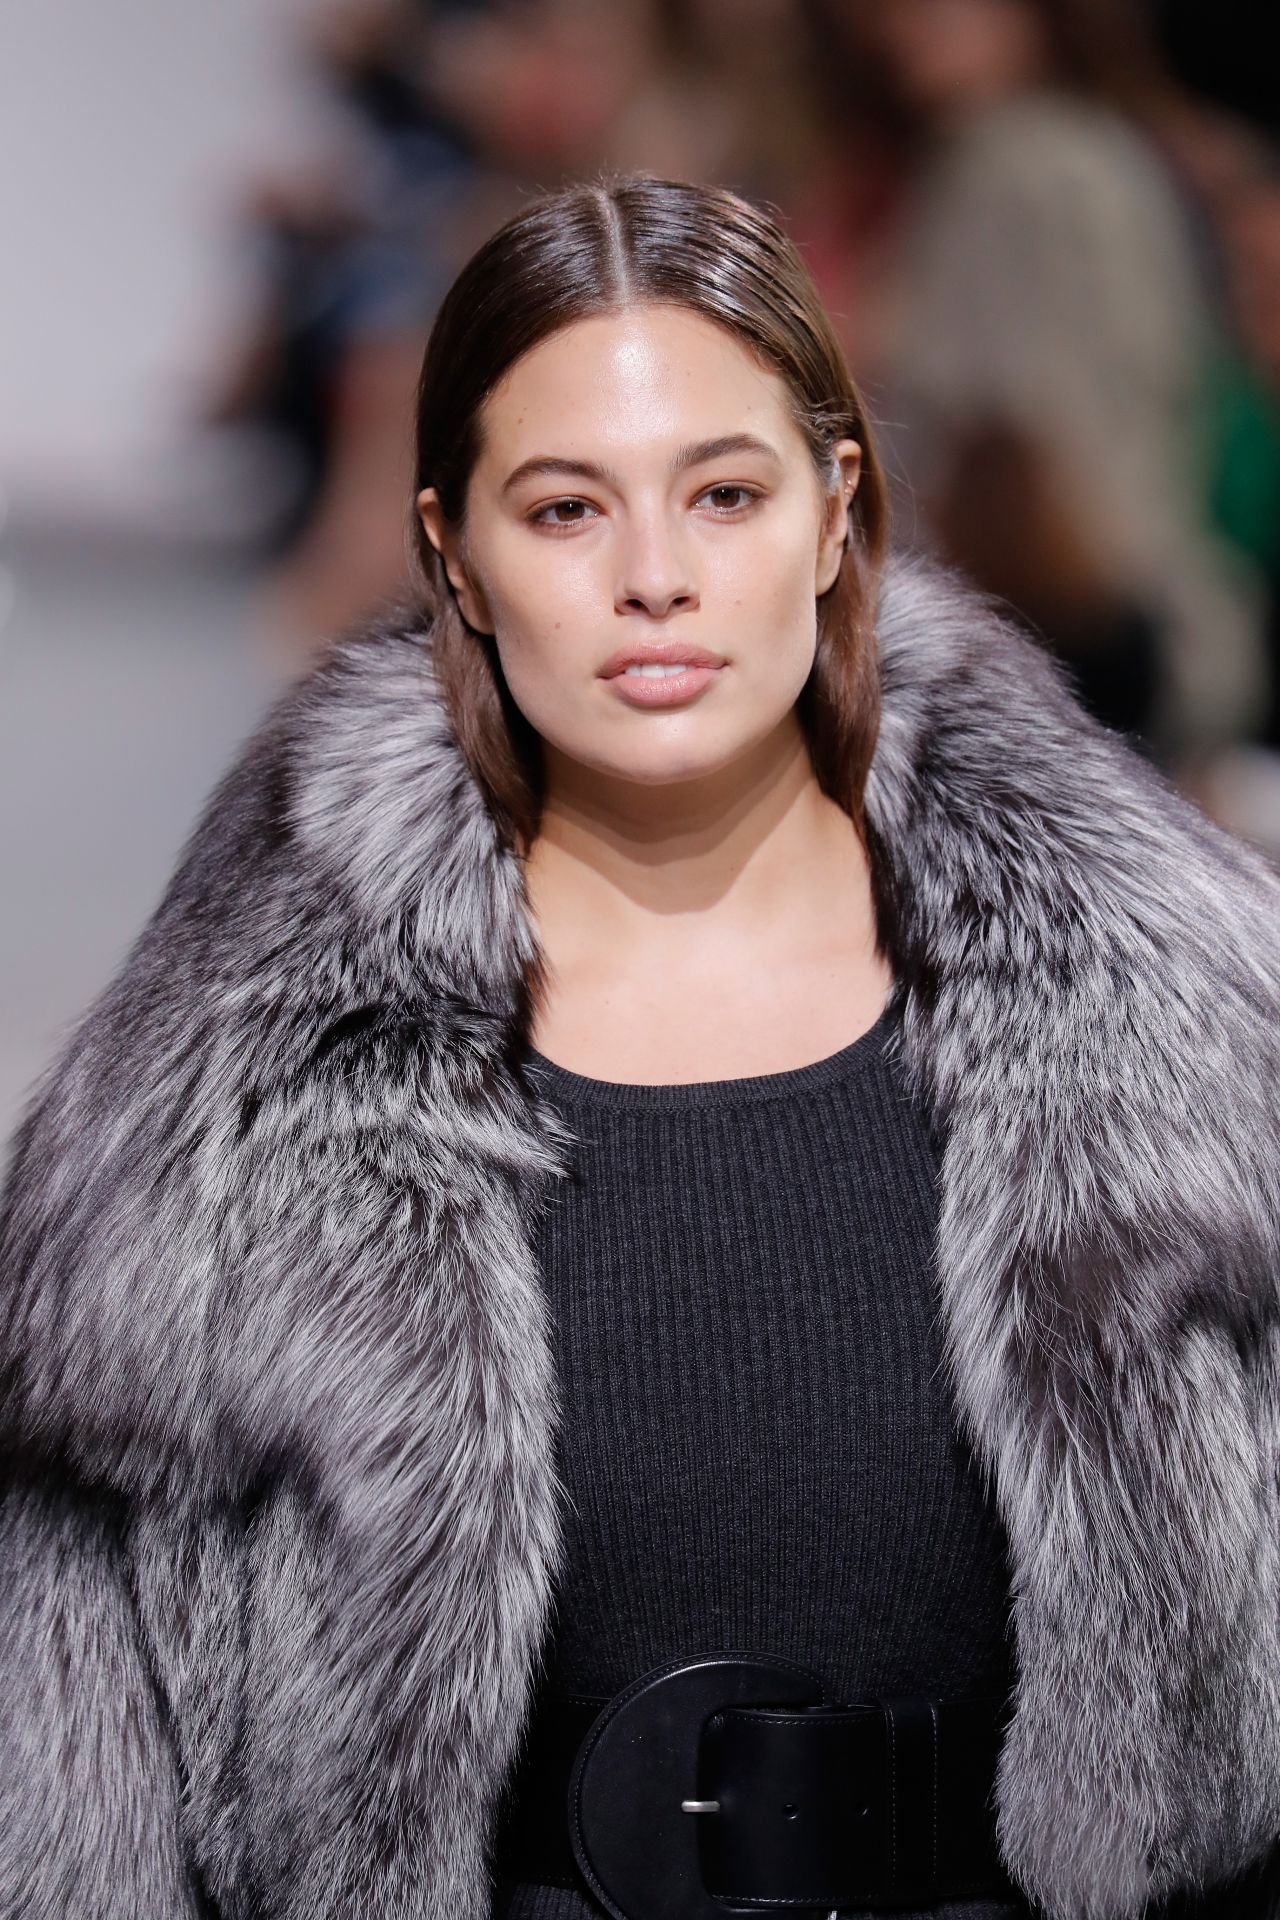 ashley graham - photo #28